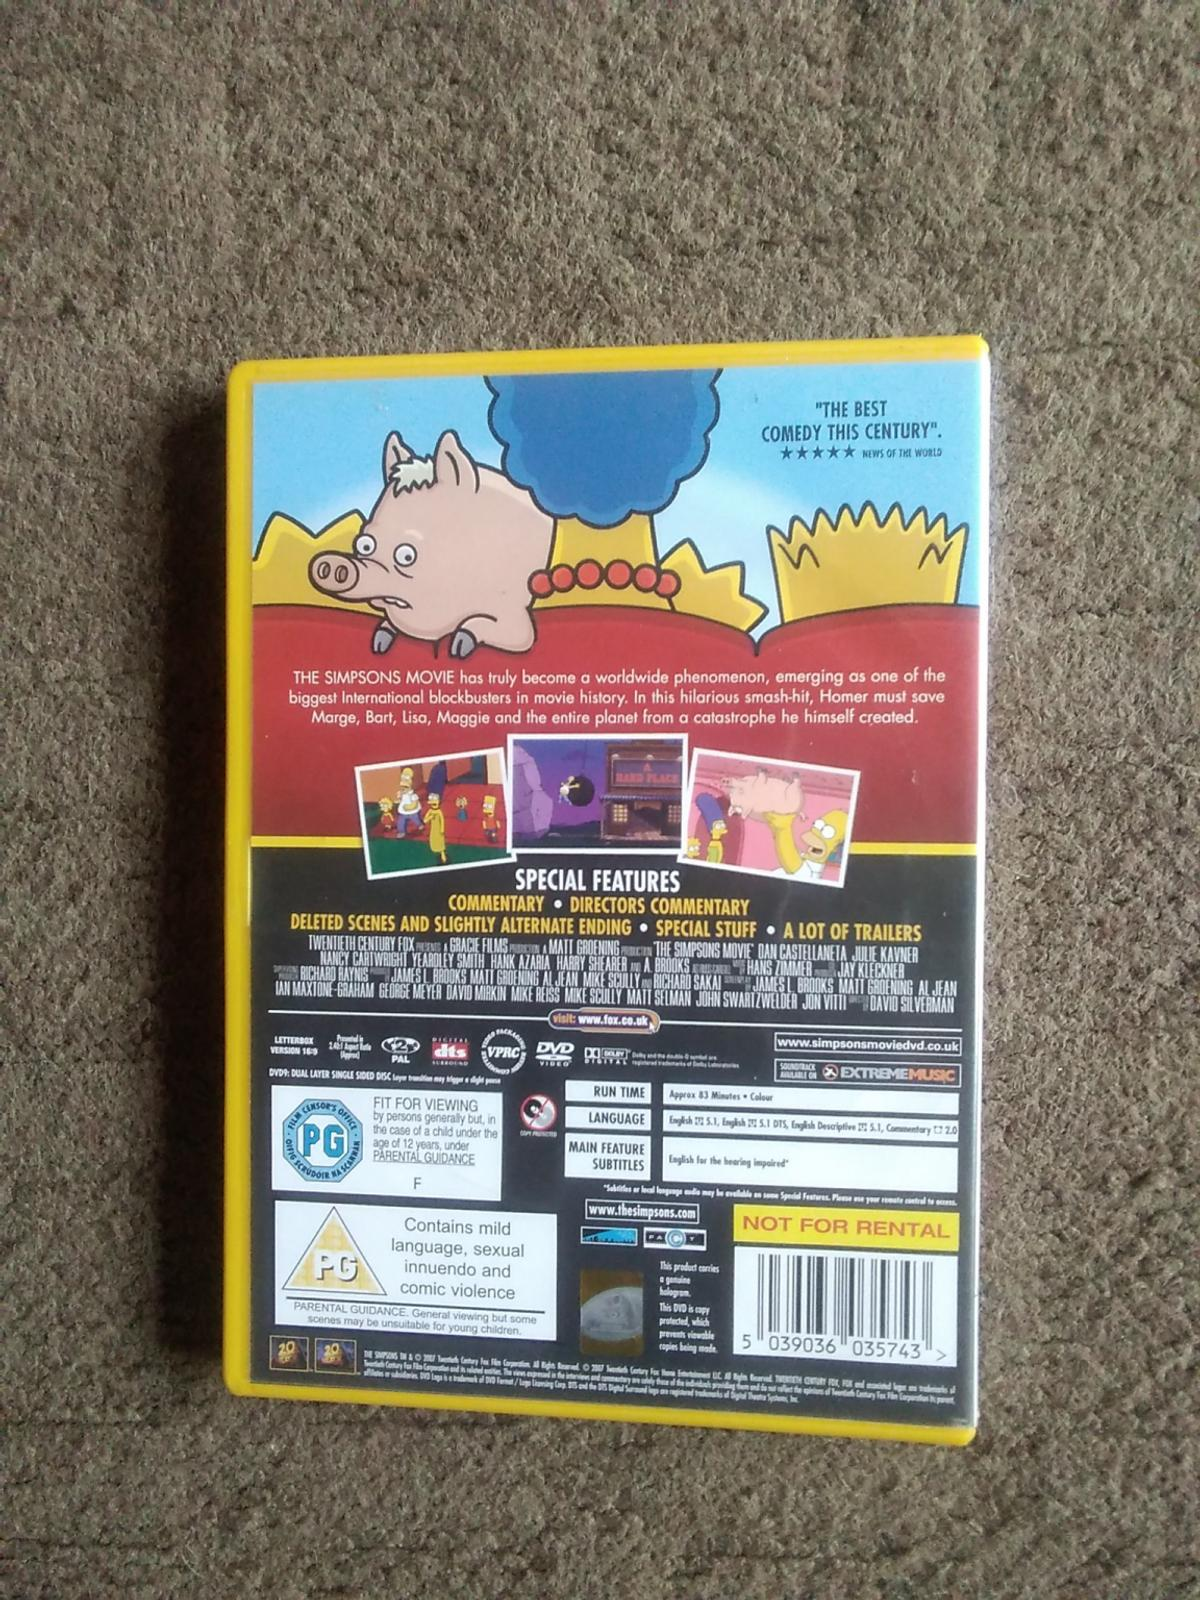 The Simpsons Movie Dvd In Ws11 Cannock Chase For 1 00 For Sale Shpock